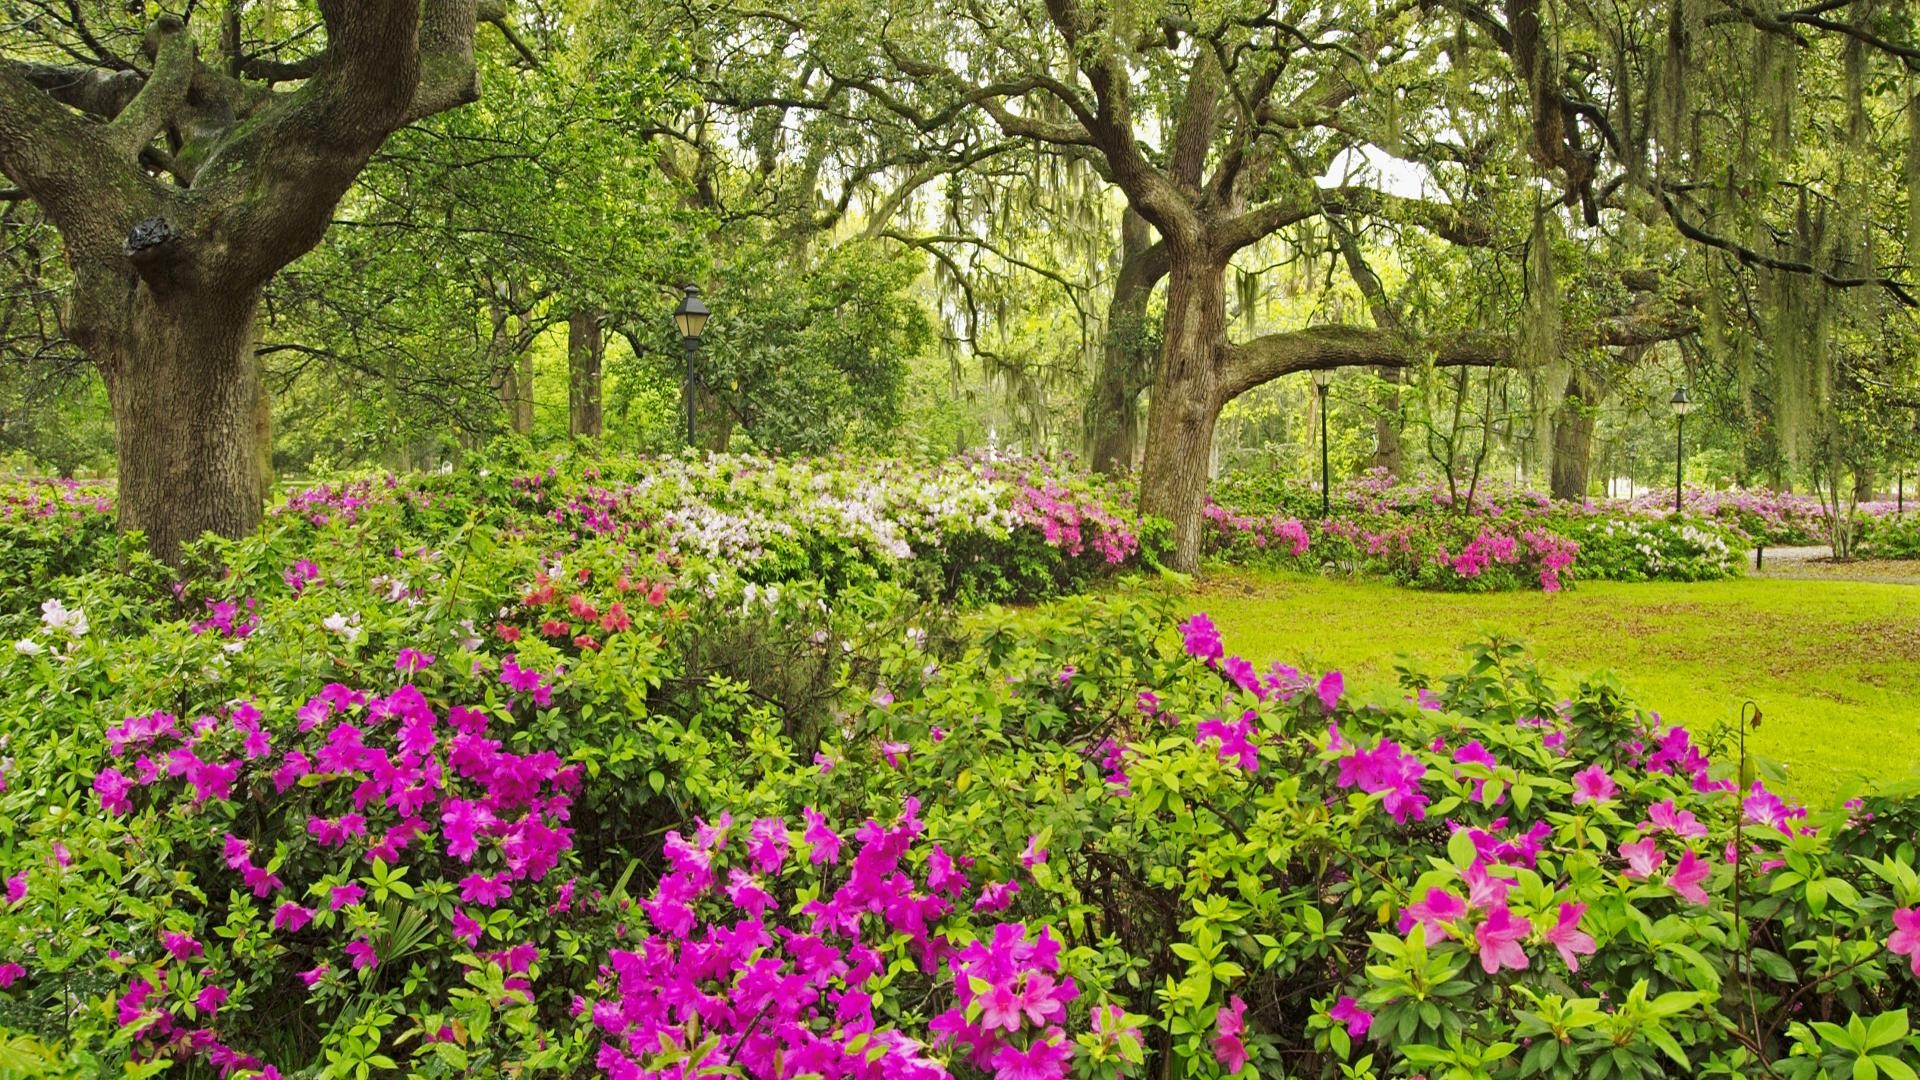 Flower garden hd wallpaper hd latest wallpapers for Beautiful garden images hd